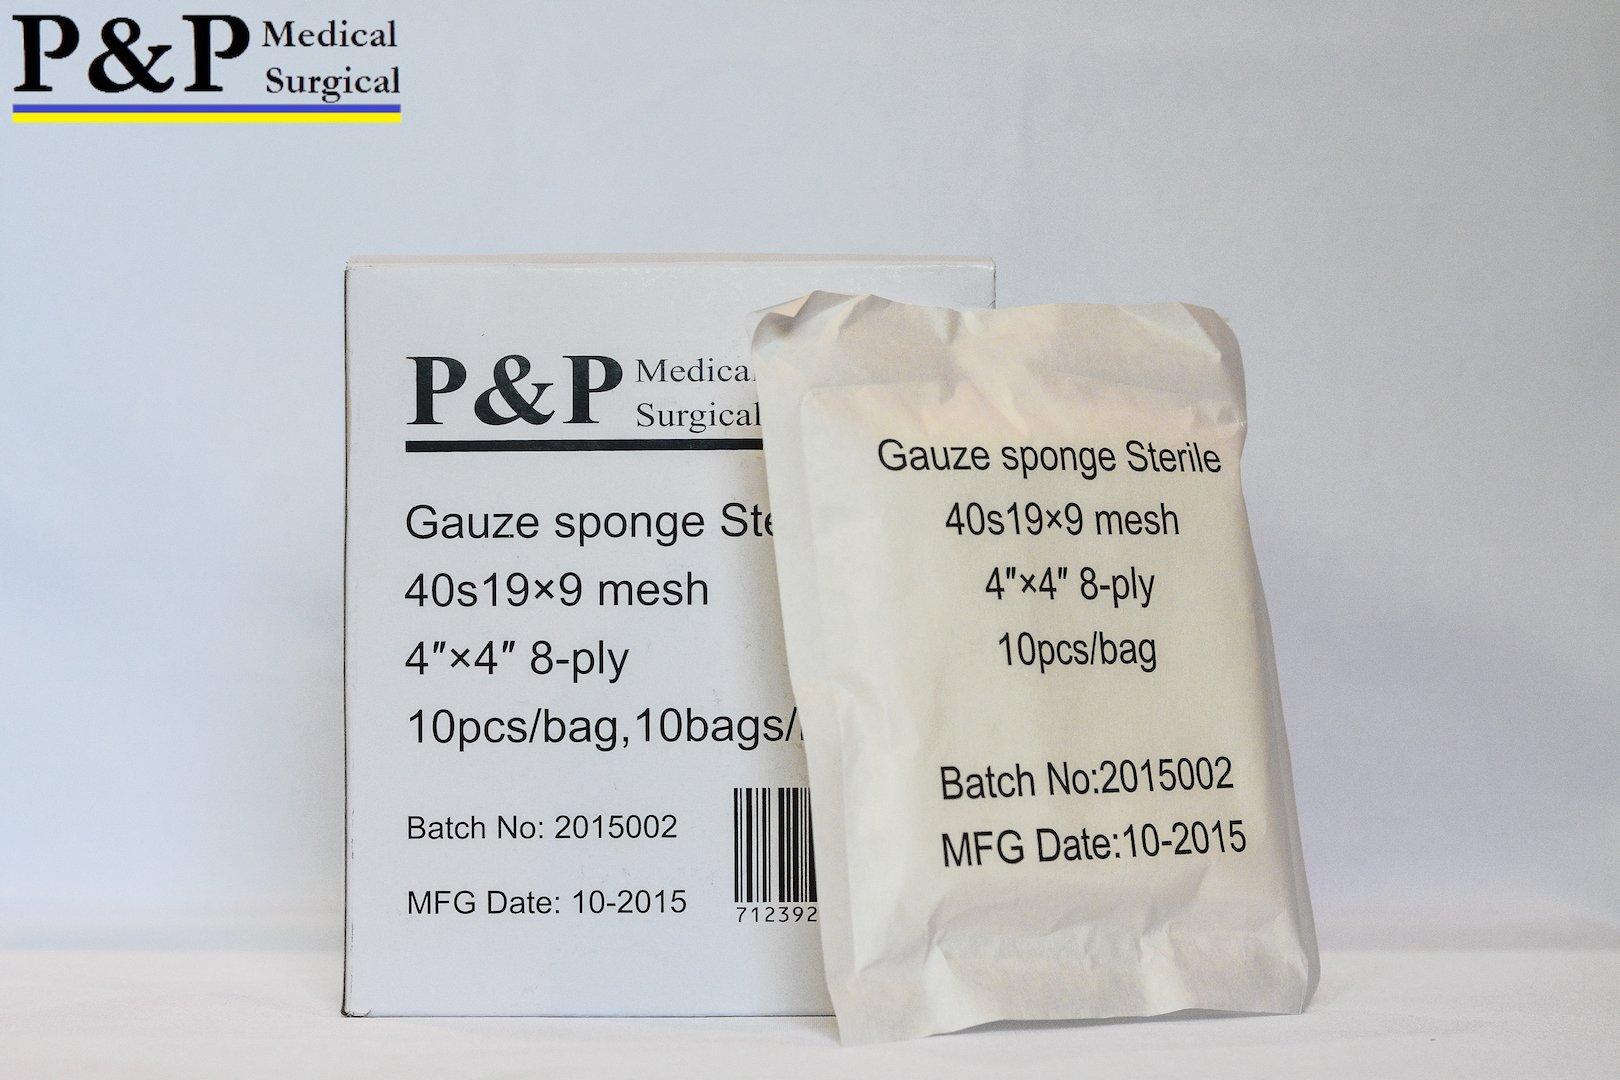 GAUZE SPONGE COTTON STERILE 8 ply (Grade Class I(a) cotton raw used for production)_4 x 4 _ 10 boxes = 1000 pads (10 Pcs/bag, 10 bags/box) _ MANUFACTURED BY P&P MEDICAL SURGICAL LLC